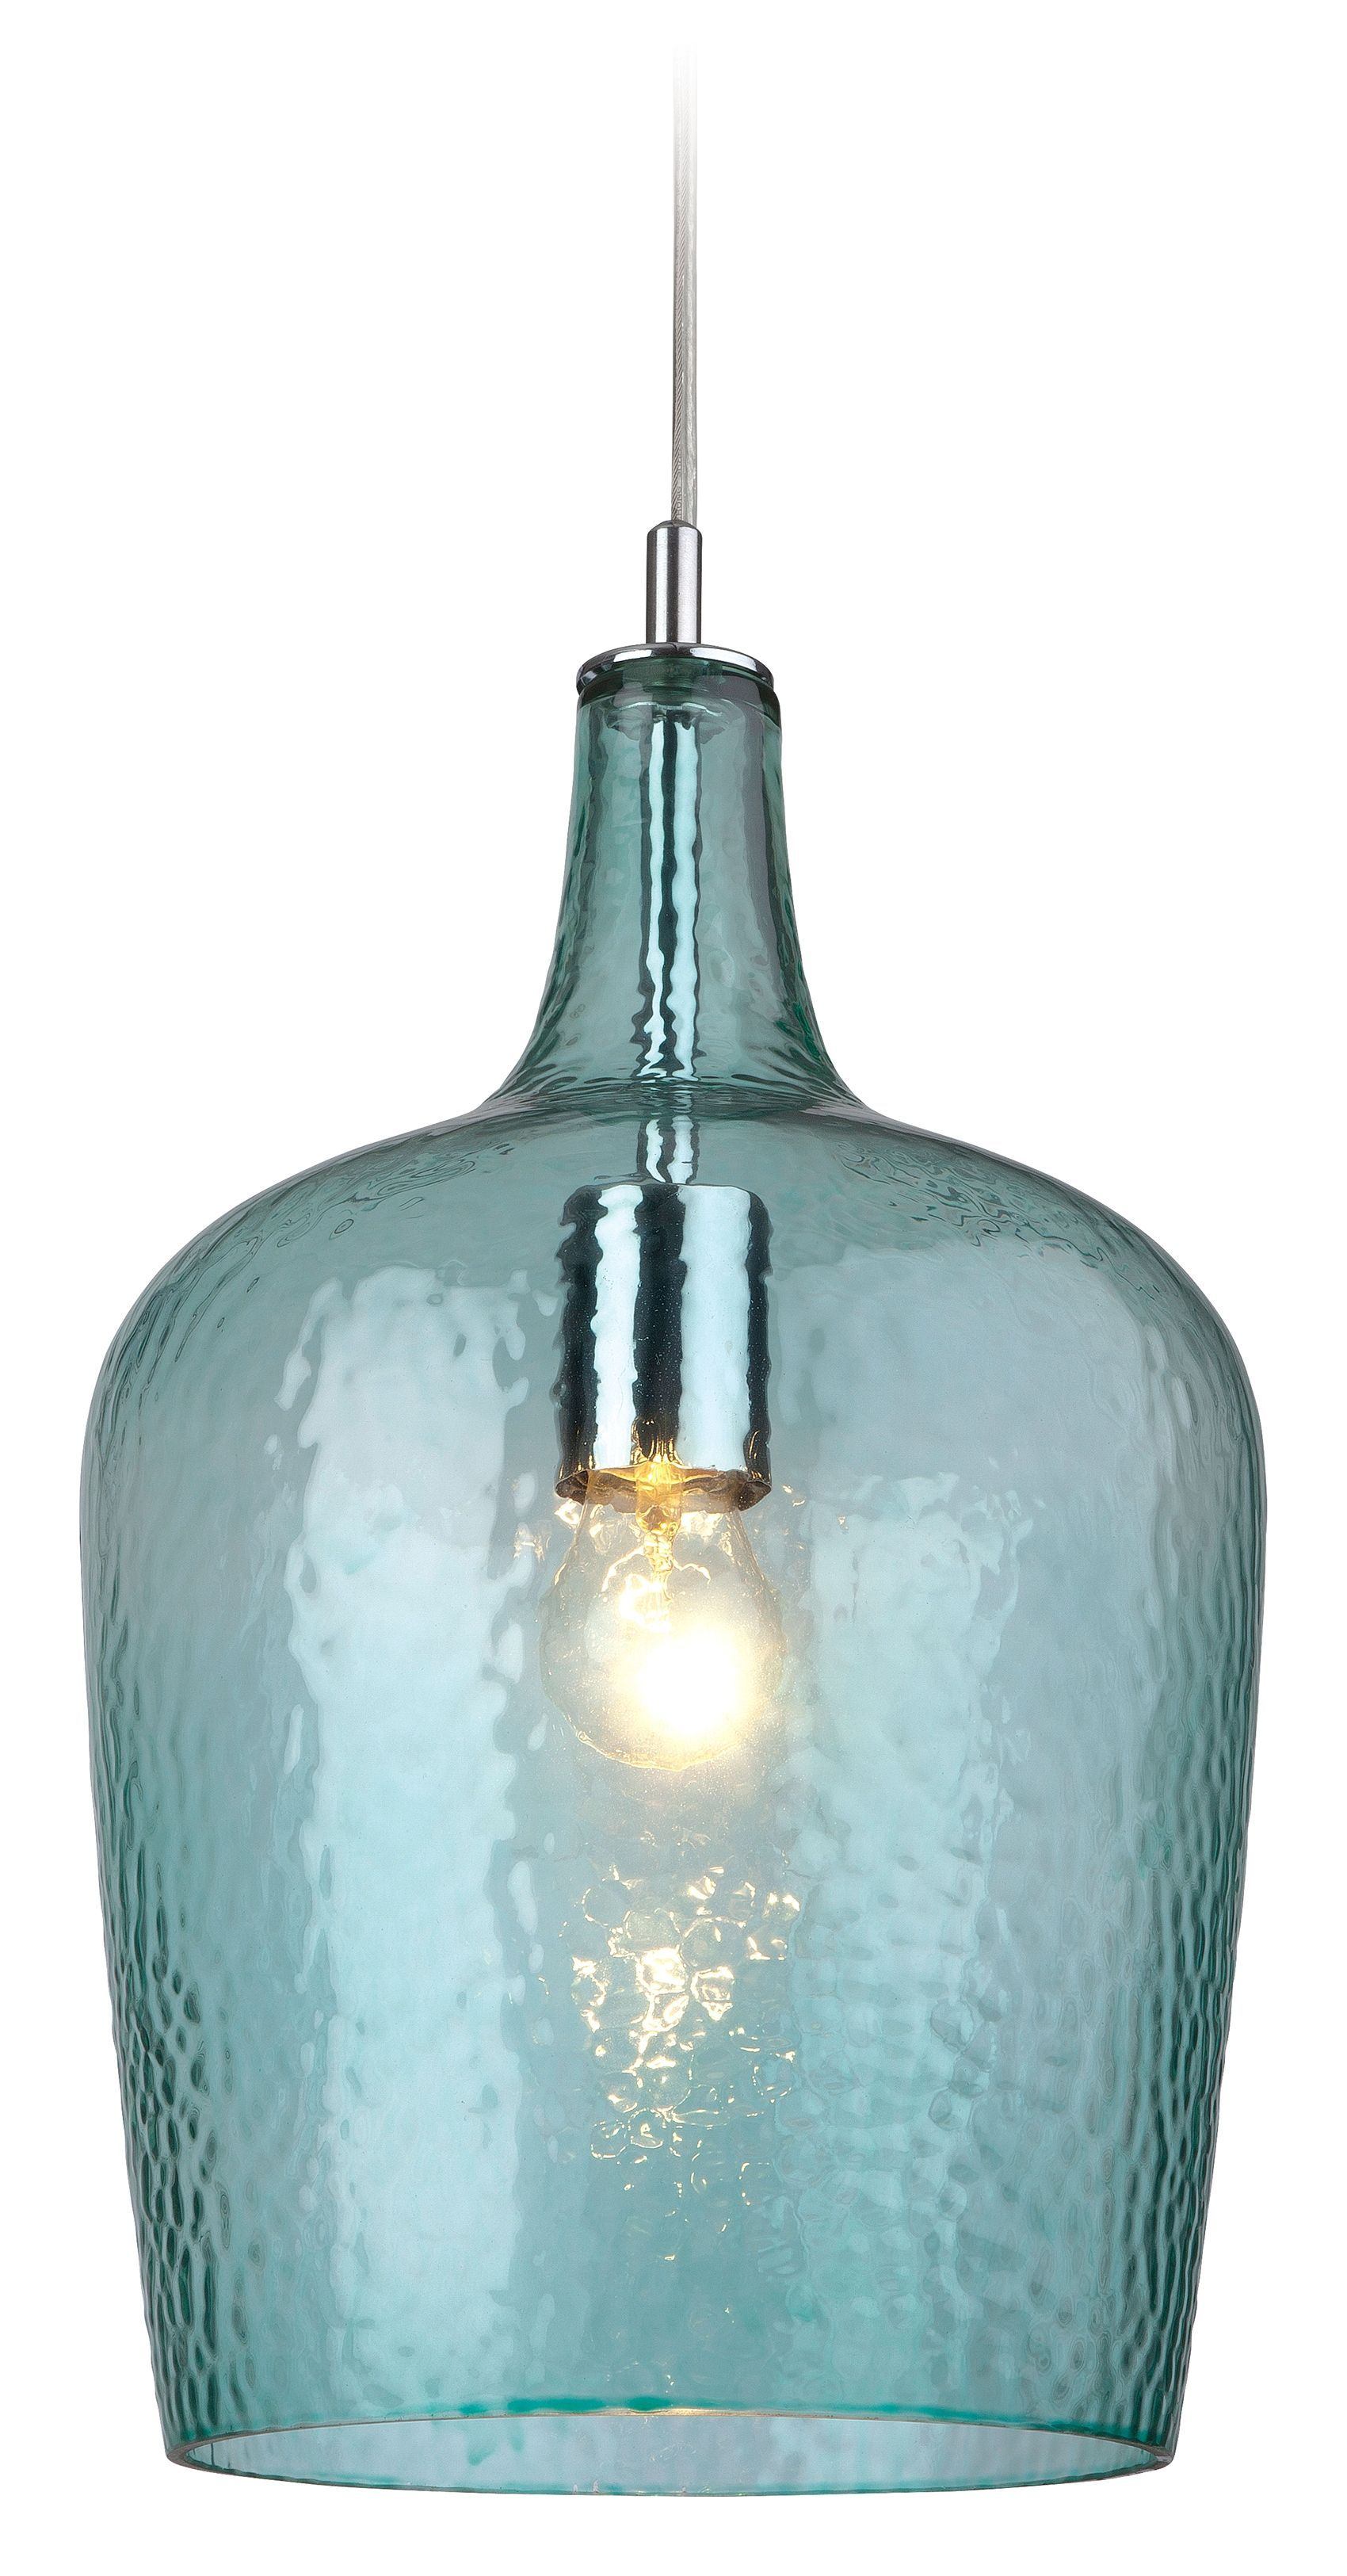 decoration large pendant suggestions glass bulb inside fitures vintage sample long lights